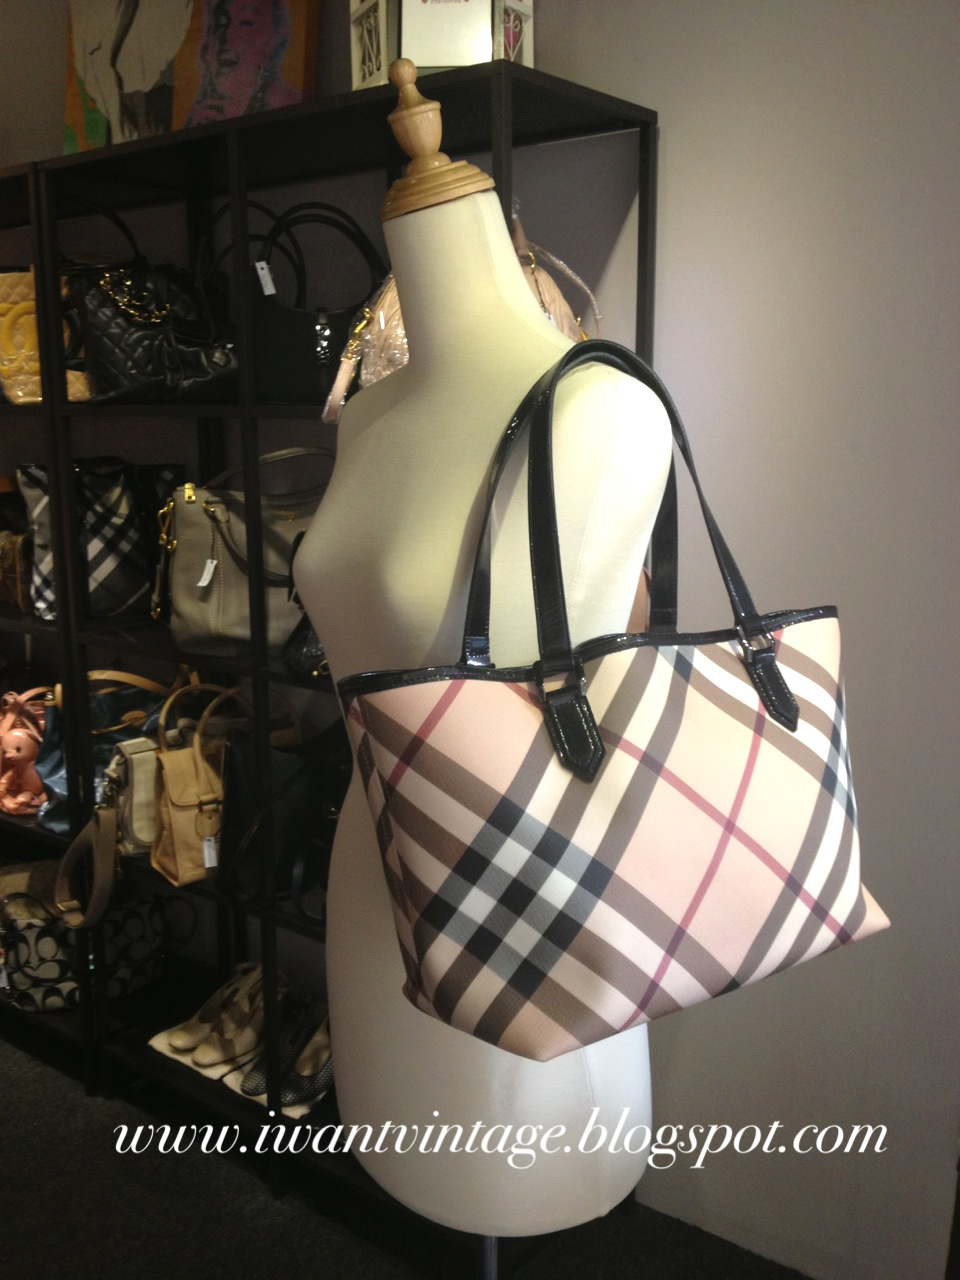 692a4ab7b8e2 Burberry Nova Small Check Tote